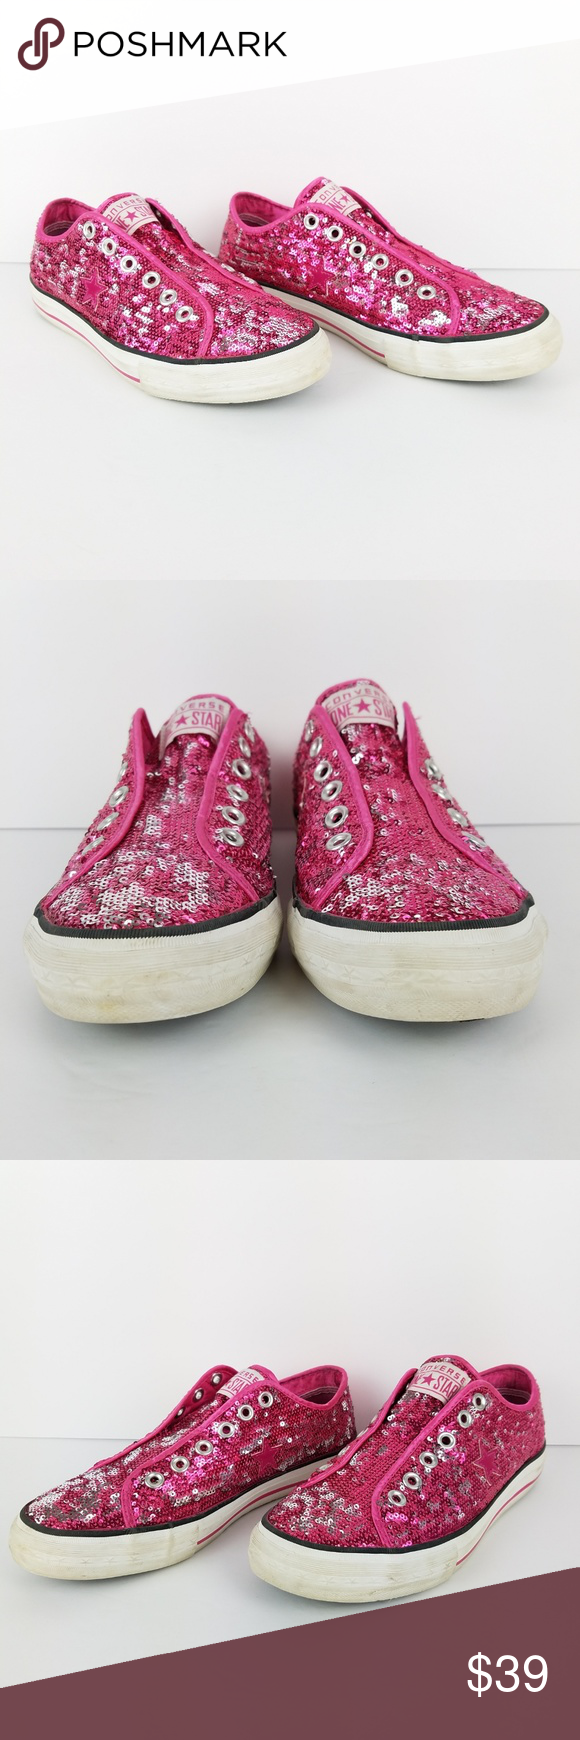 7582369262b9 Converse One Pink Silver Sequin Sneakers 8.5 EUC In excellent